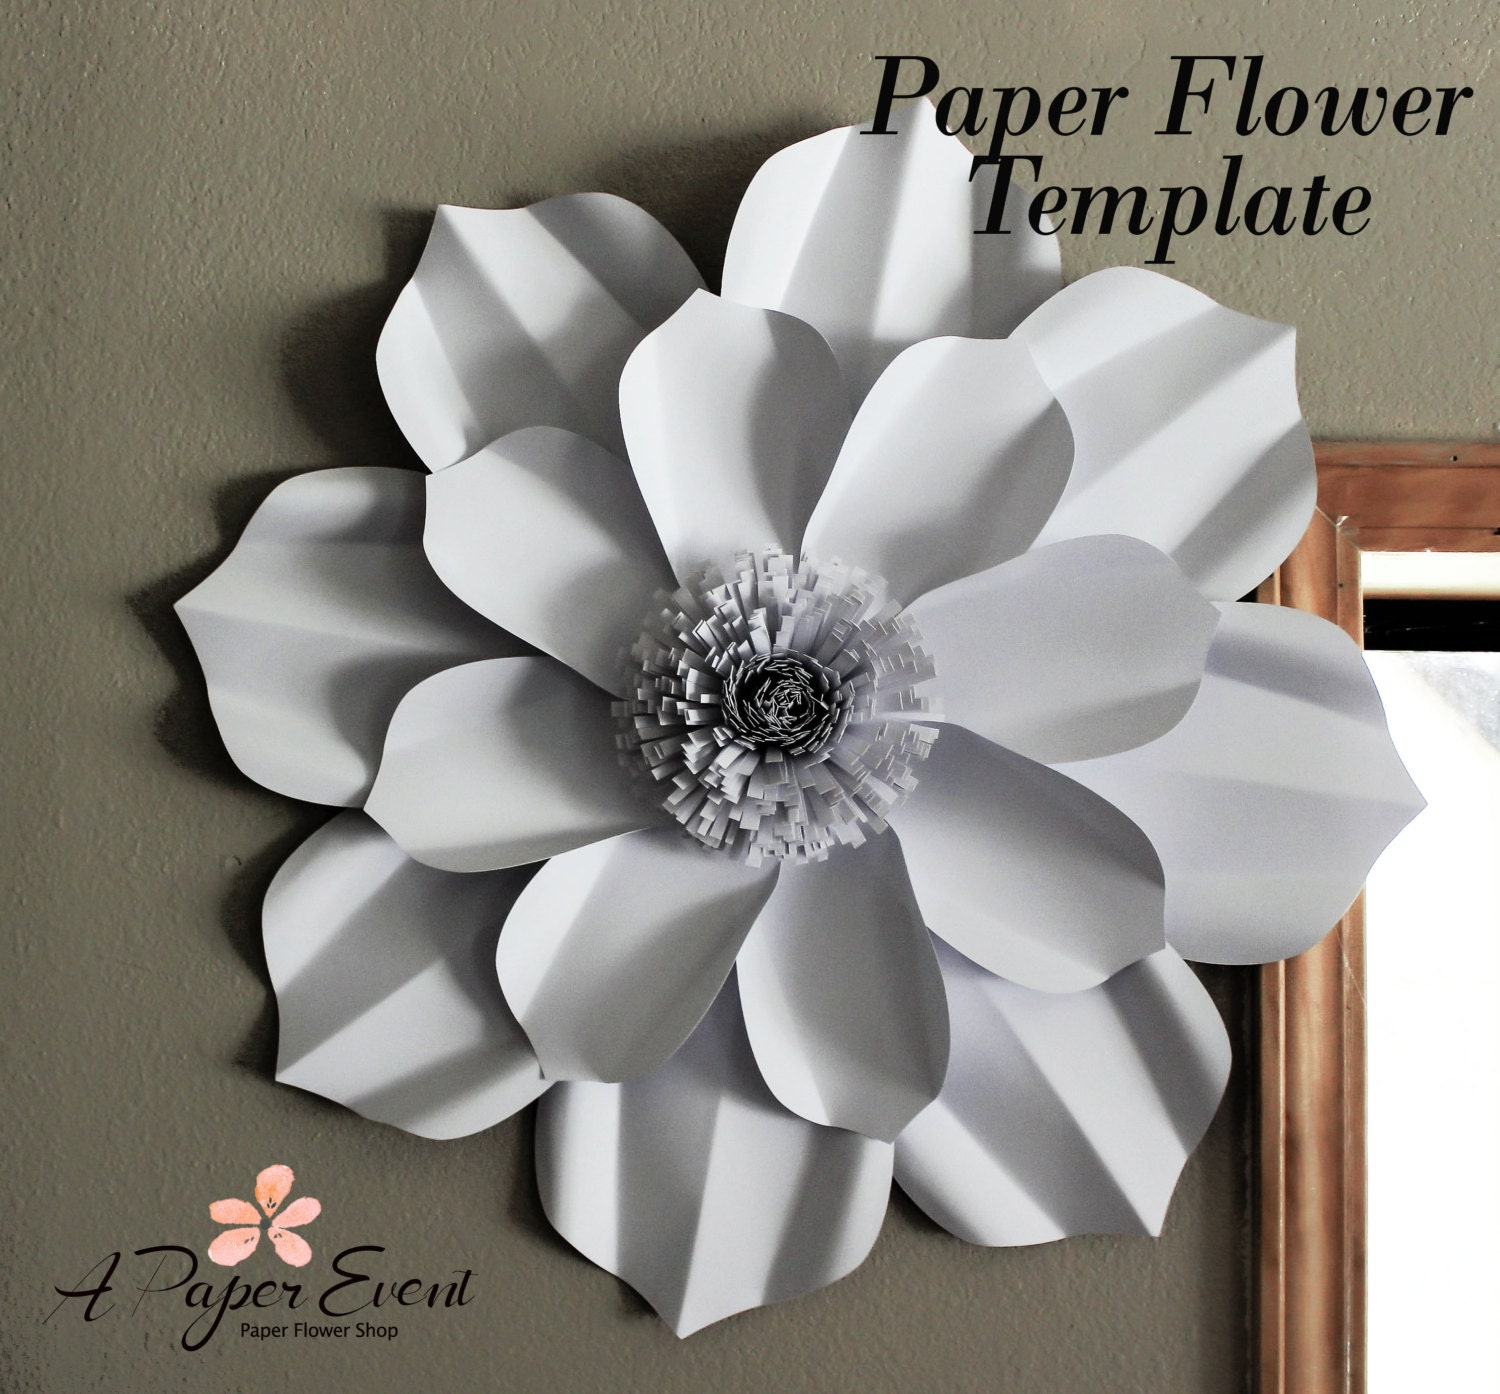 Paper Flower Template DIY Paper Flower DIY Backdrop Paper Flower Backdrop